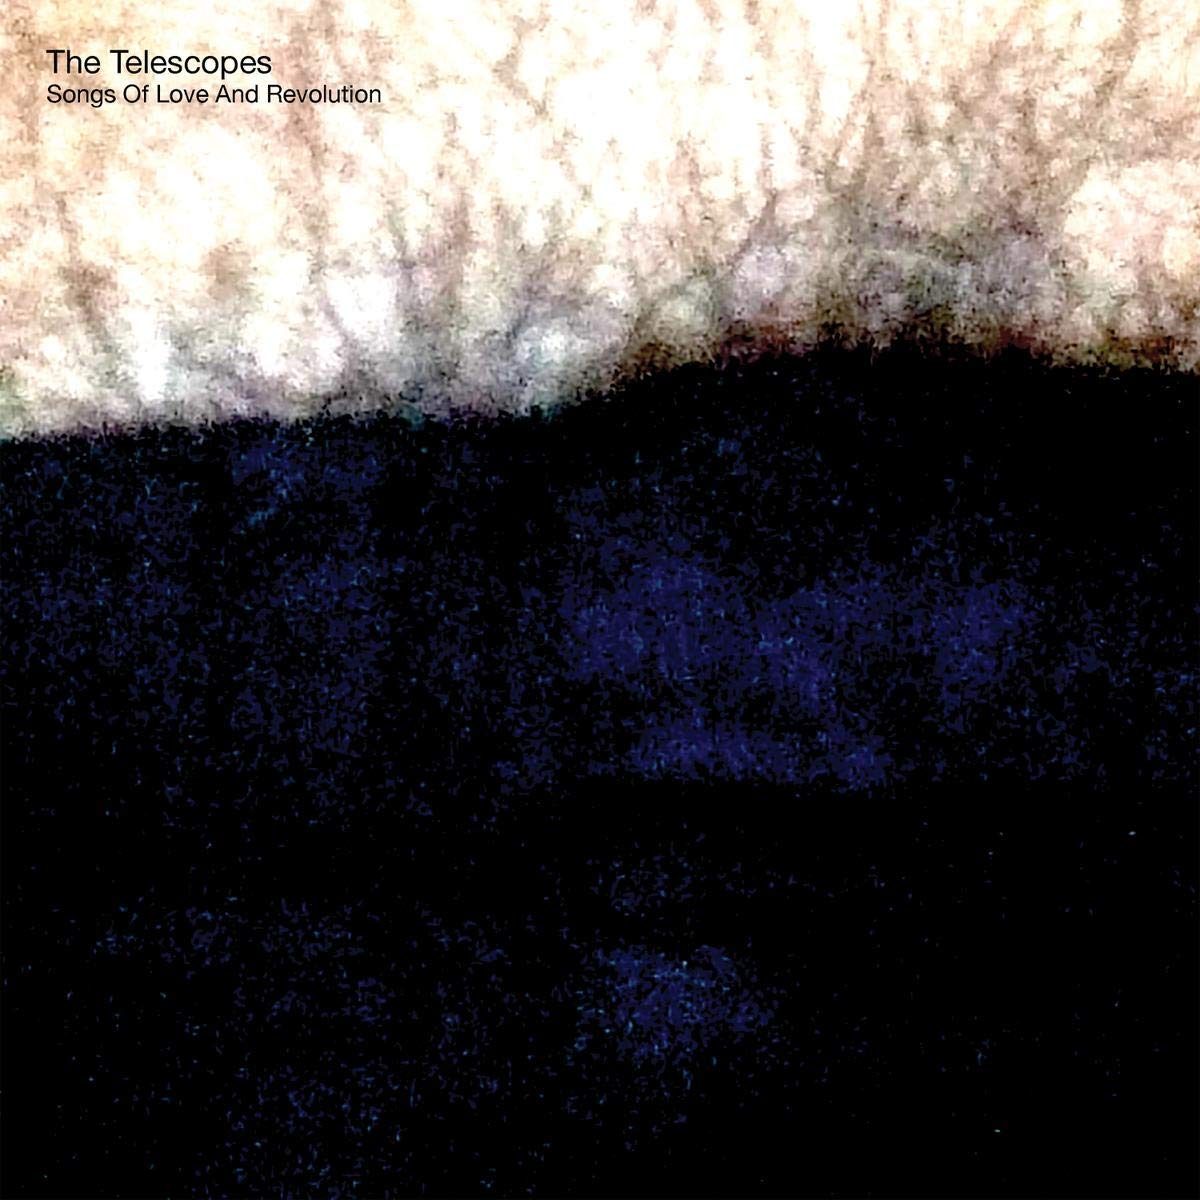 The Telescopes - Songs Of Love And Revolution (2021) [FLAC] Download